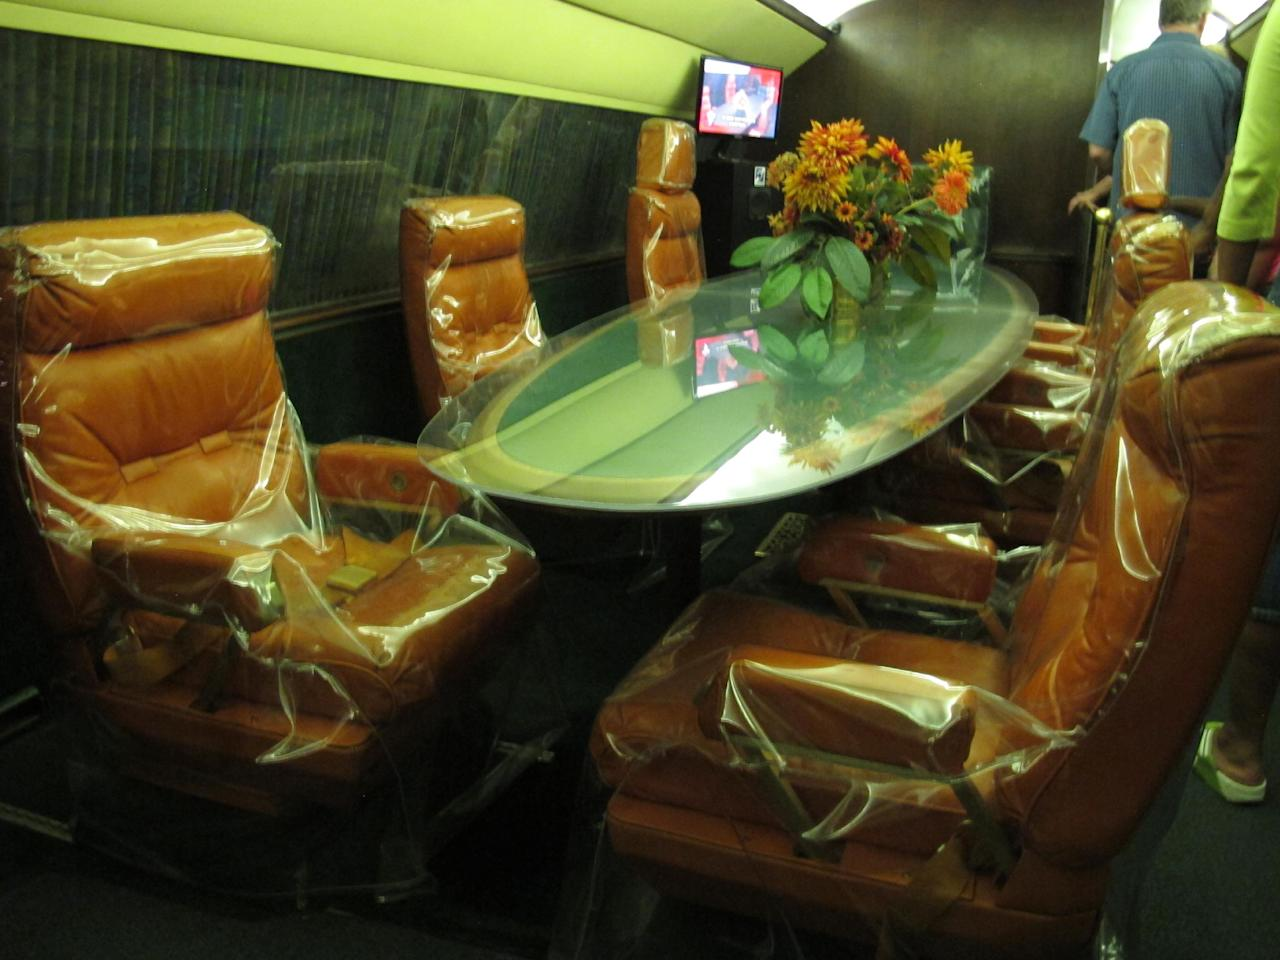 This photo taken on Tuesday, July 1, 2014, shows a large conference table inside the Lisa Marie, one of two jets once owned by late singer Elvis Presley, that are used as tourist exhibits at the Graceland attraction in Memphis, Tenn. The company that operates the Graceland tourist attraction has told the current owners of the Lisa Marie, and another plane called the Hound Dog II, that it wants the planes removed from Graceland by late April 2015, or shortly afterward. (AP Photo/Adrian Sainz)